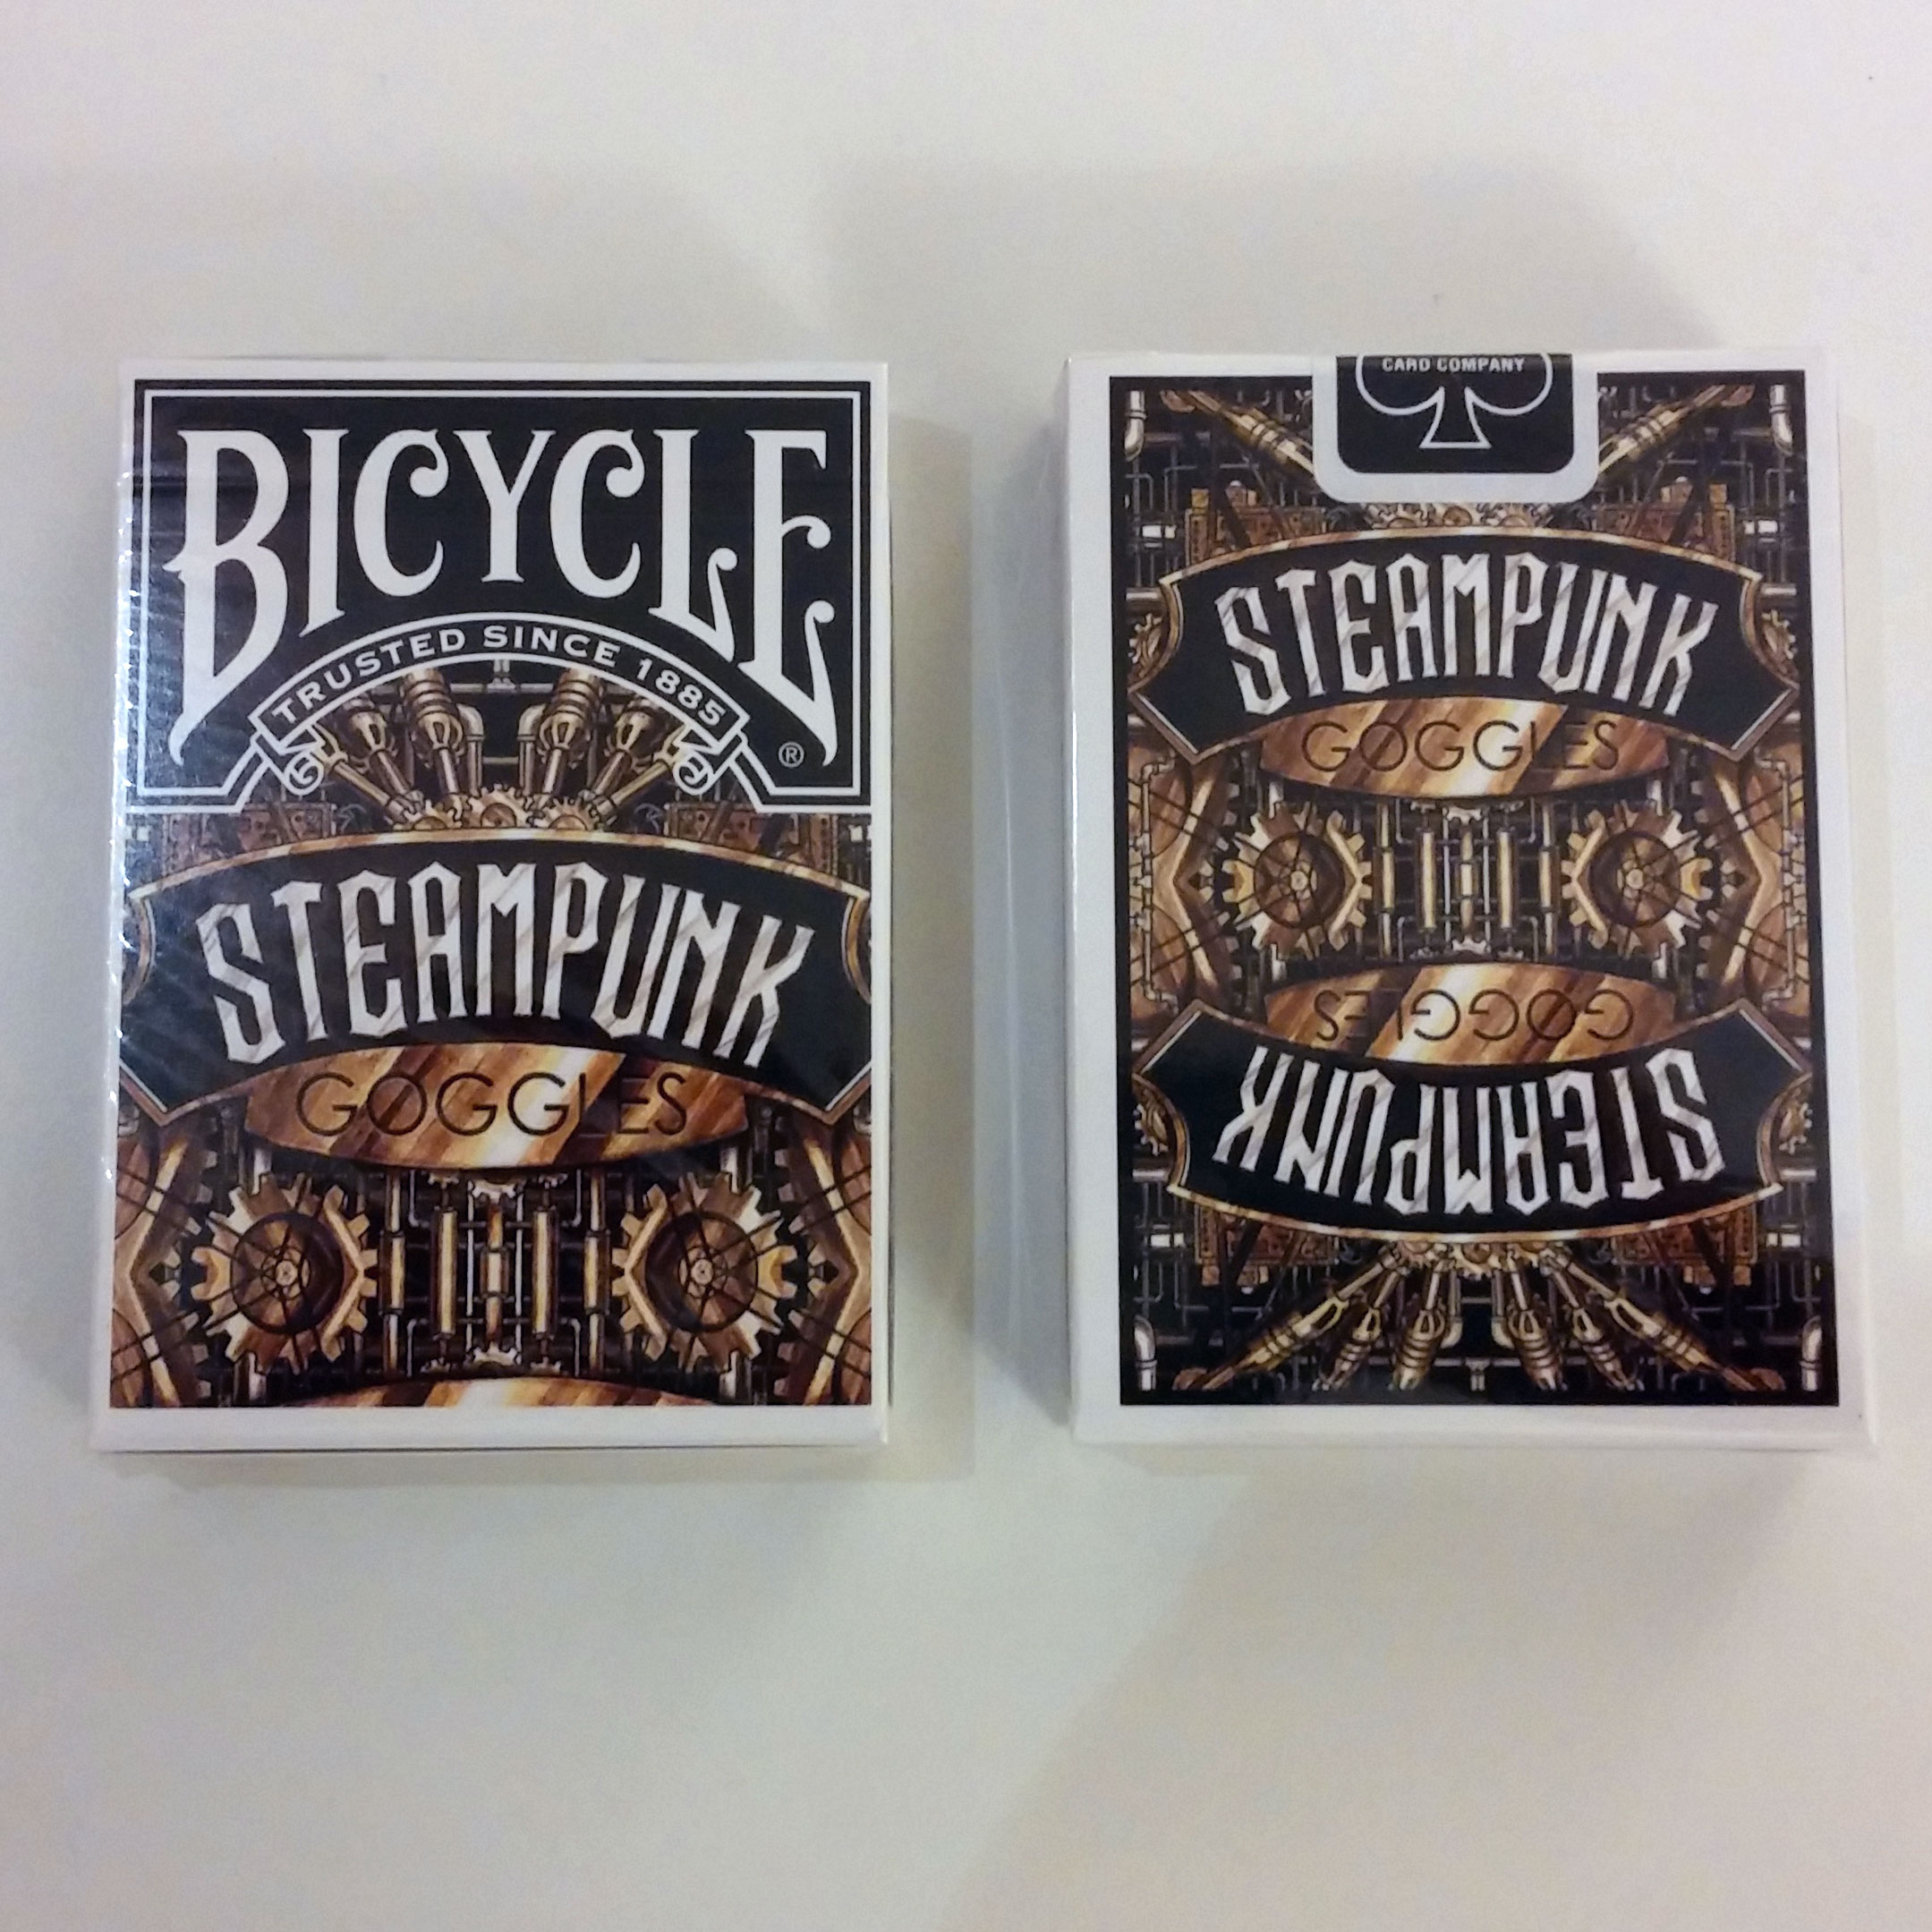 Steampunk Playing Cards - Bicycle - USPC Limited Edition